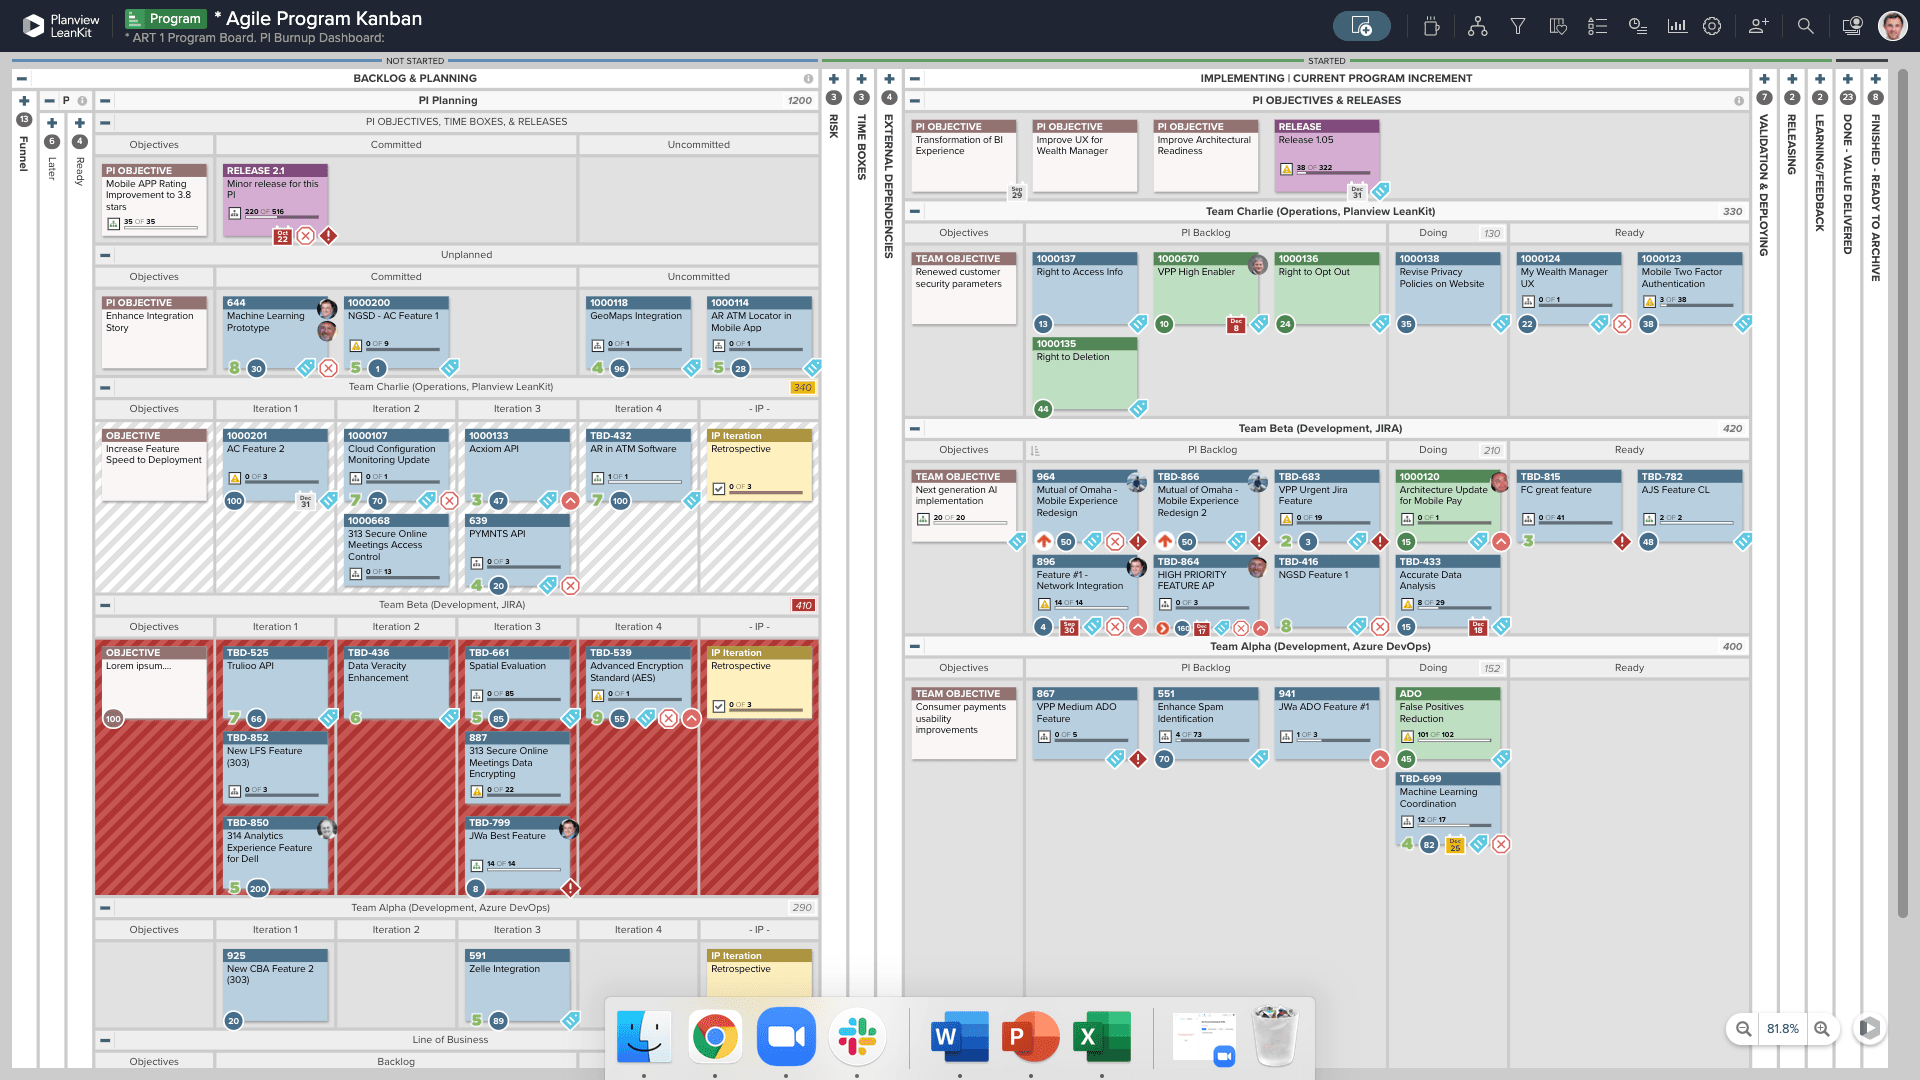 Agile Program Kanban display screen